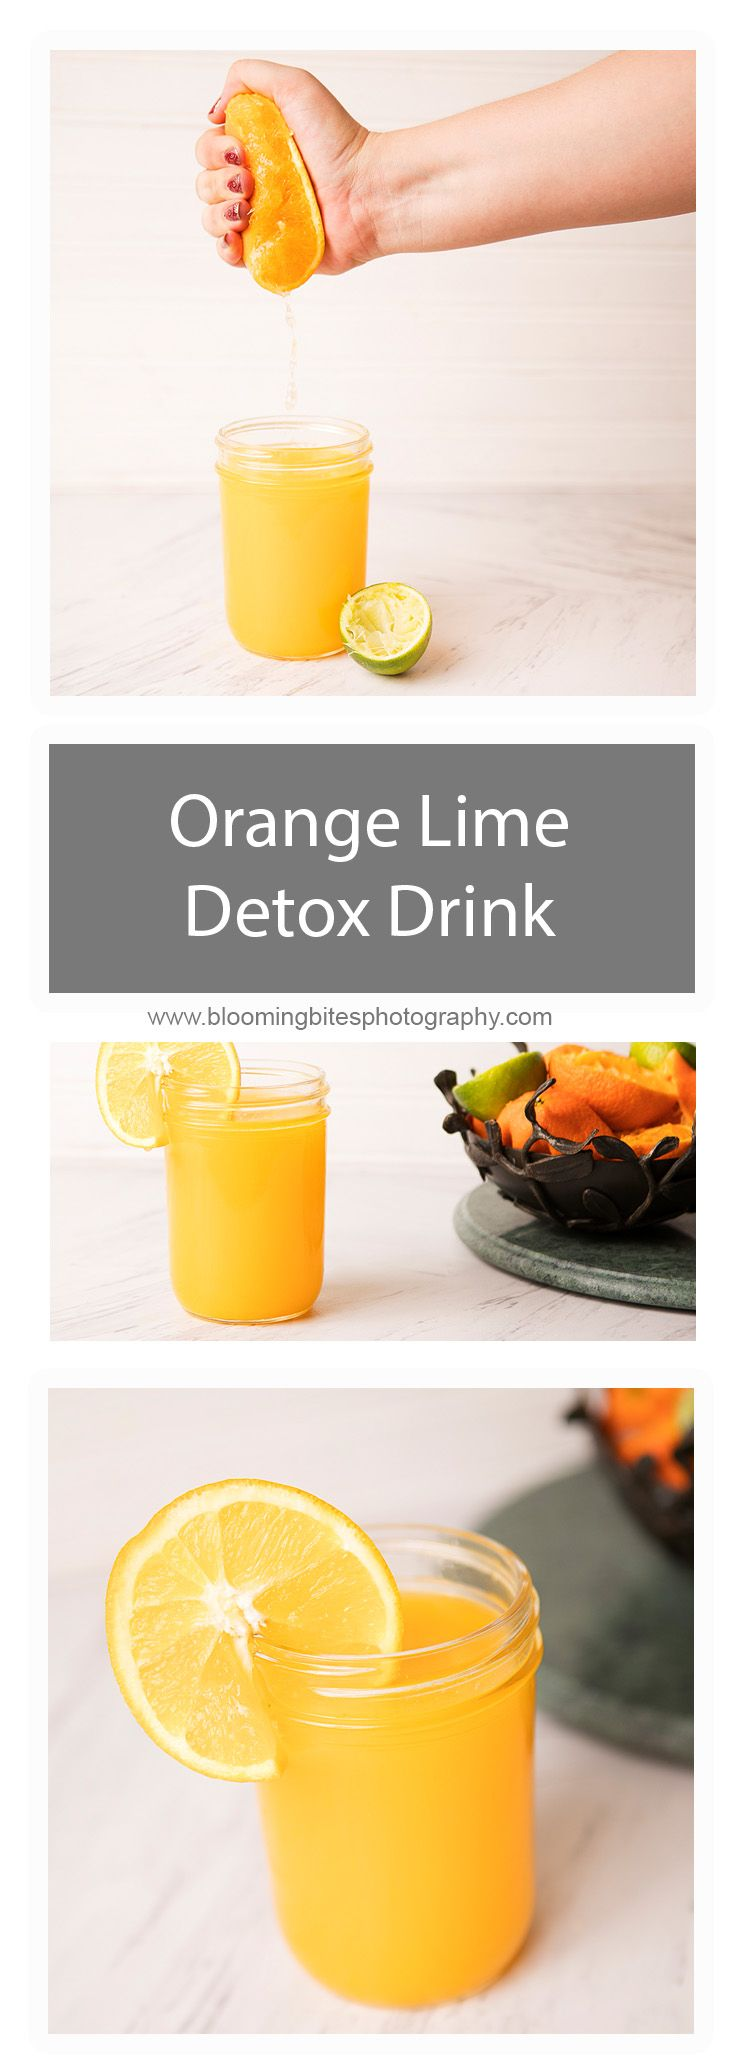 Orange and Lime Detox Drink - Juicing is a great way to start your morning, and this Orange and Lime Detox juice is delicious and a great defense in fighting against illness